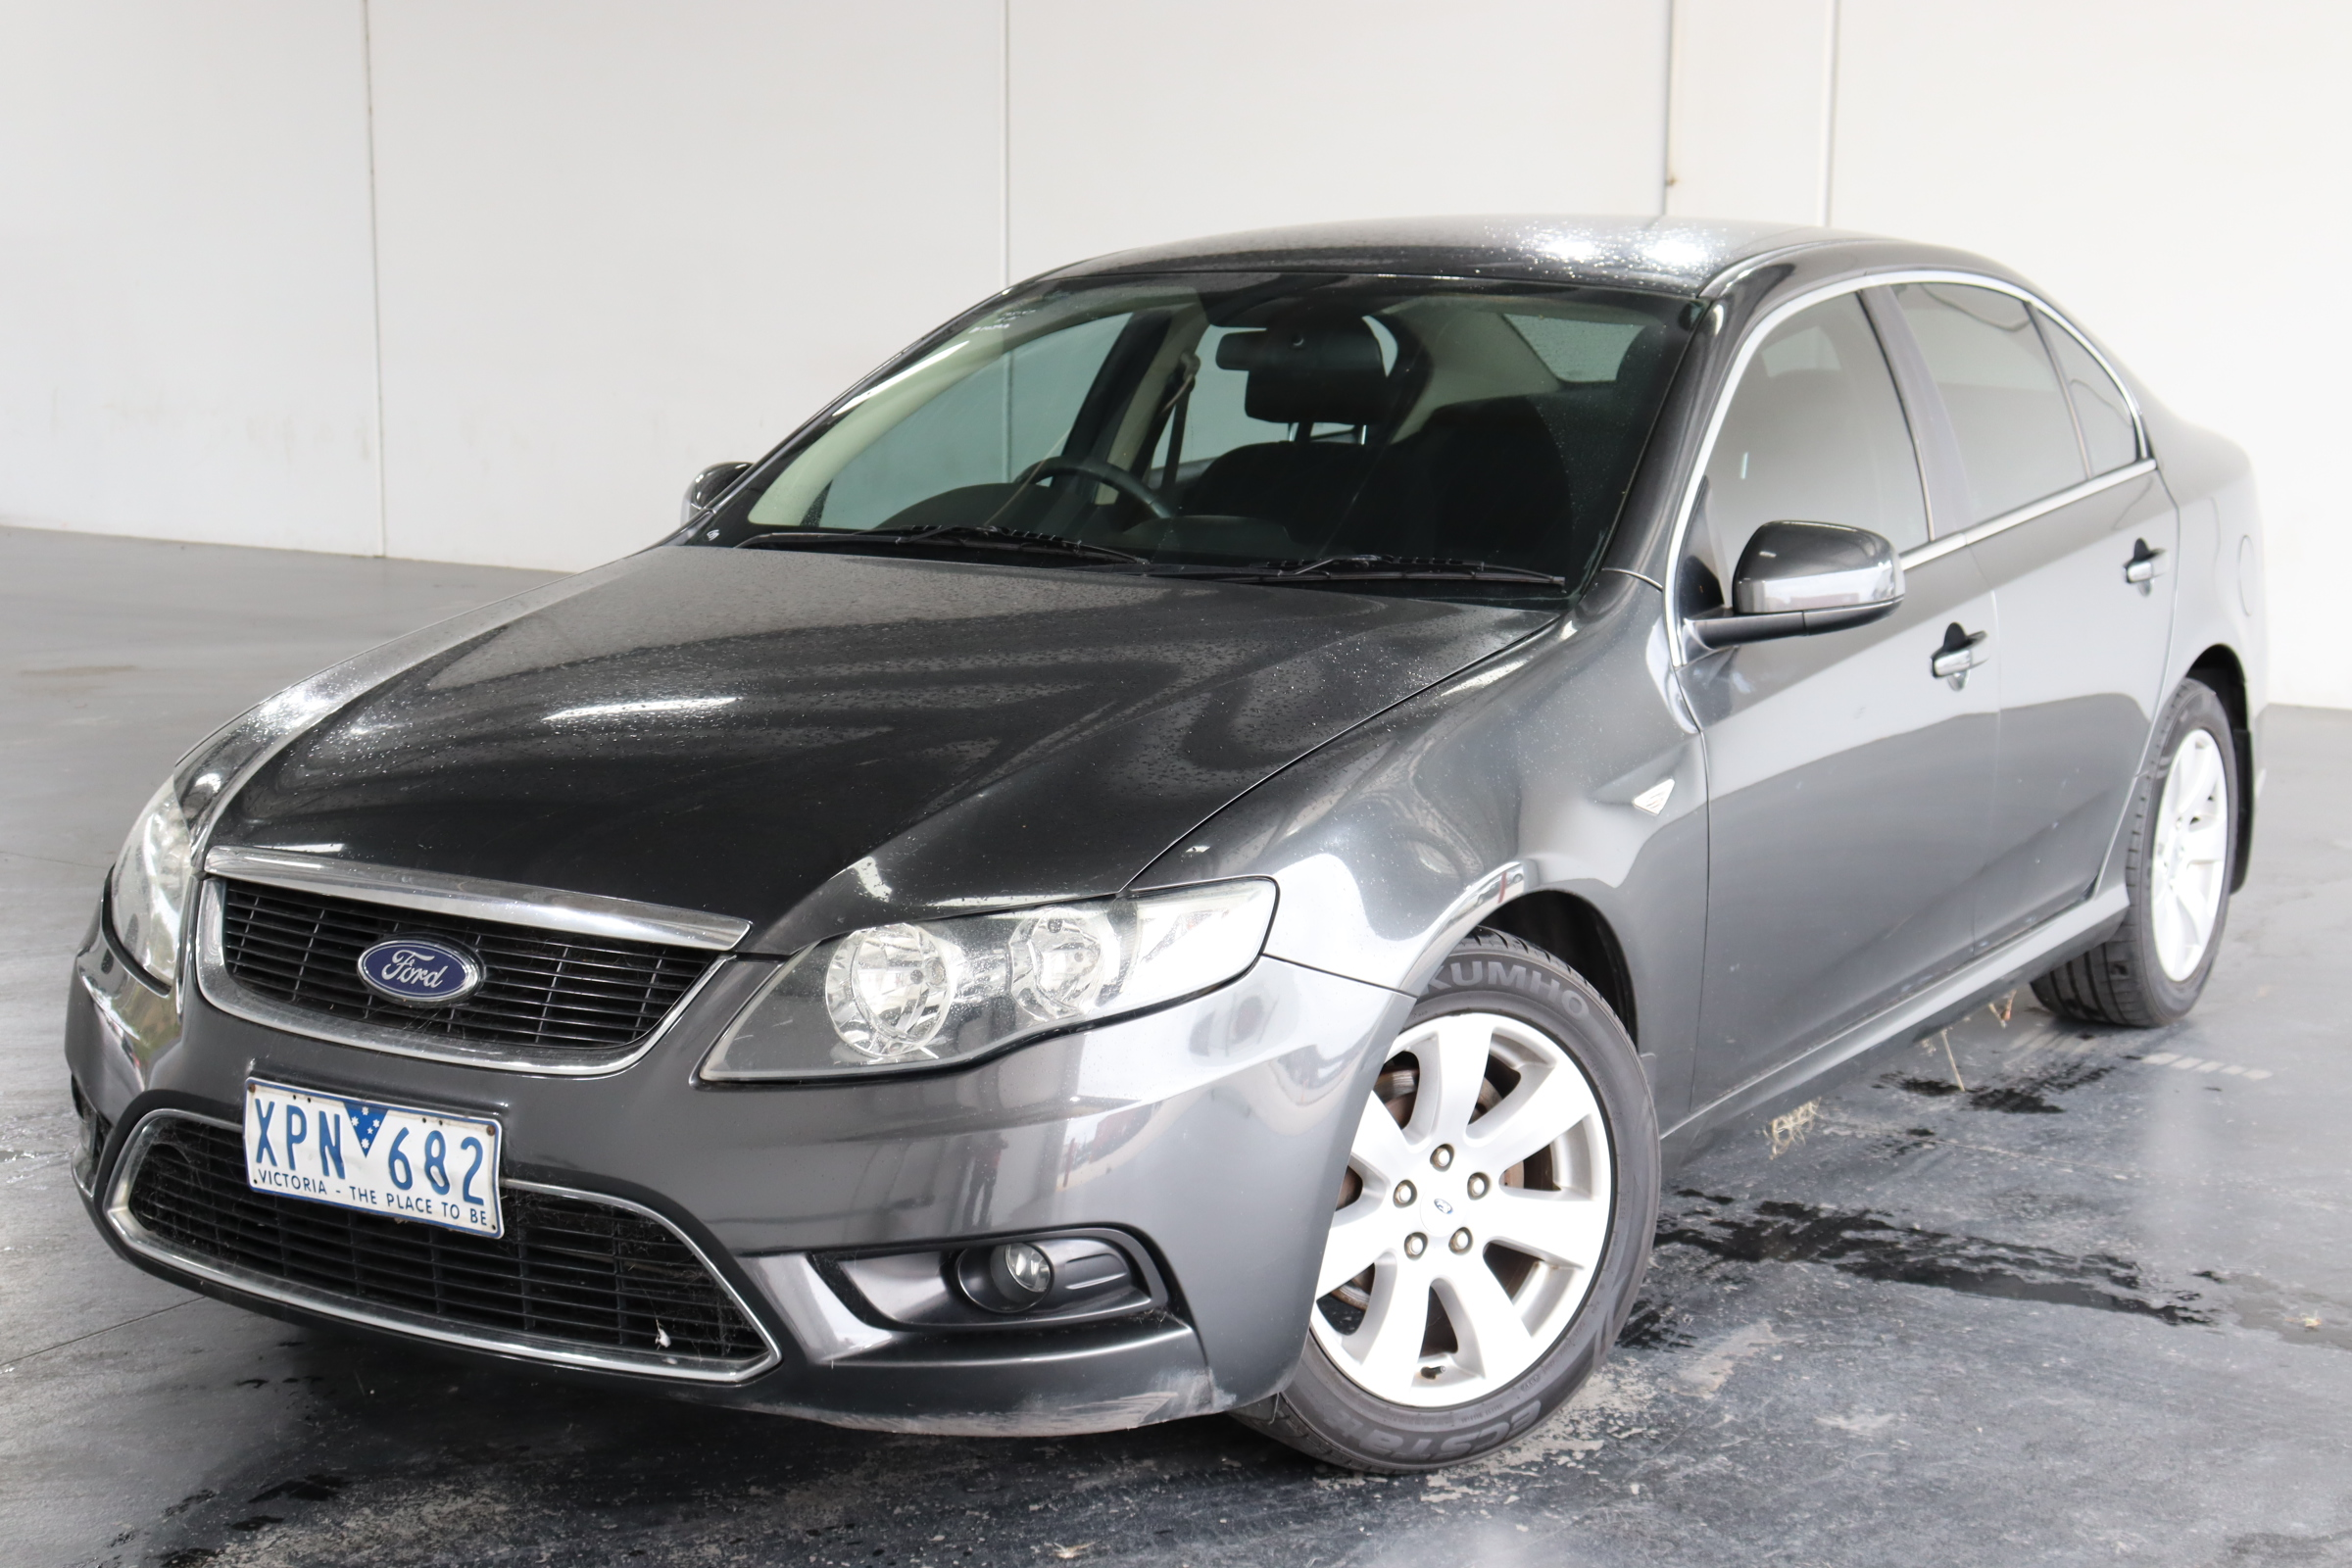 2010 Ford Falcon G6 FG Automatic Sedan